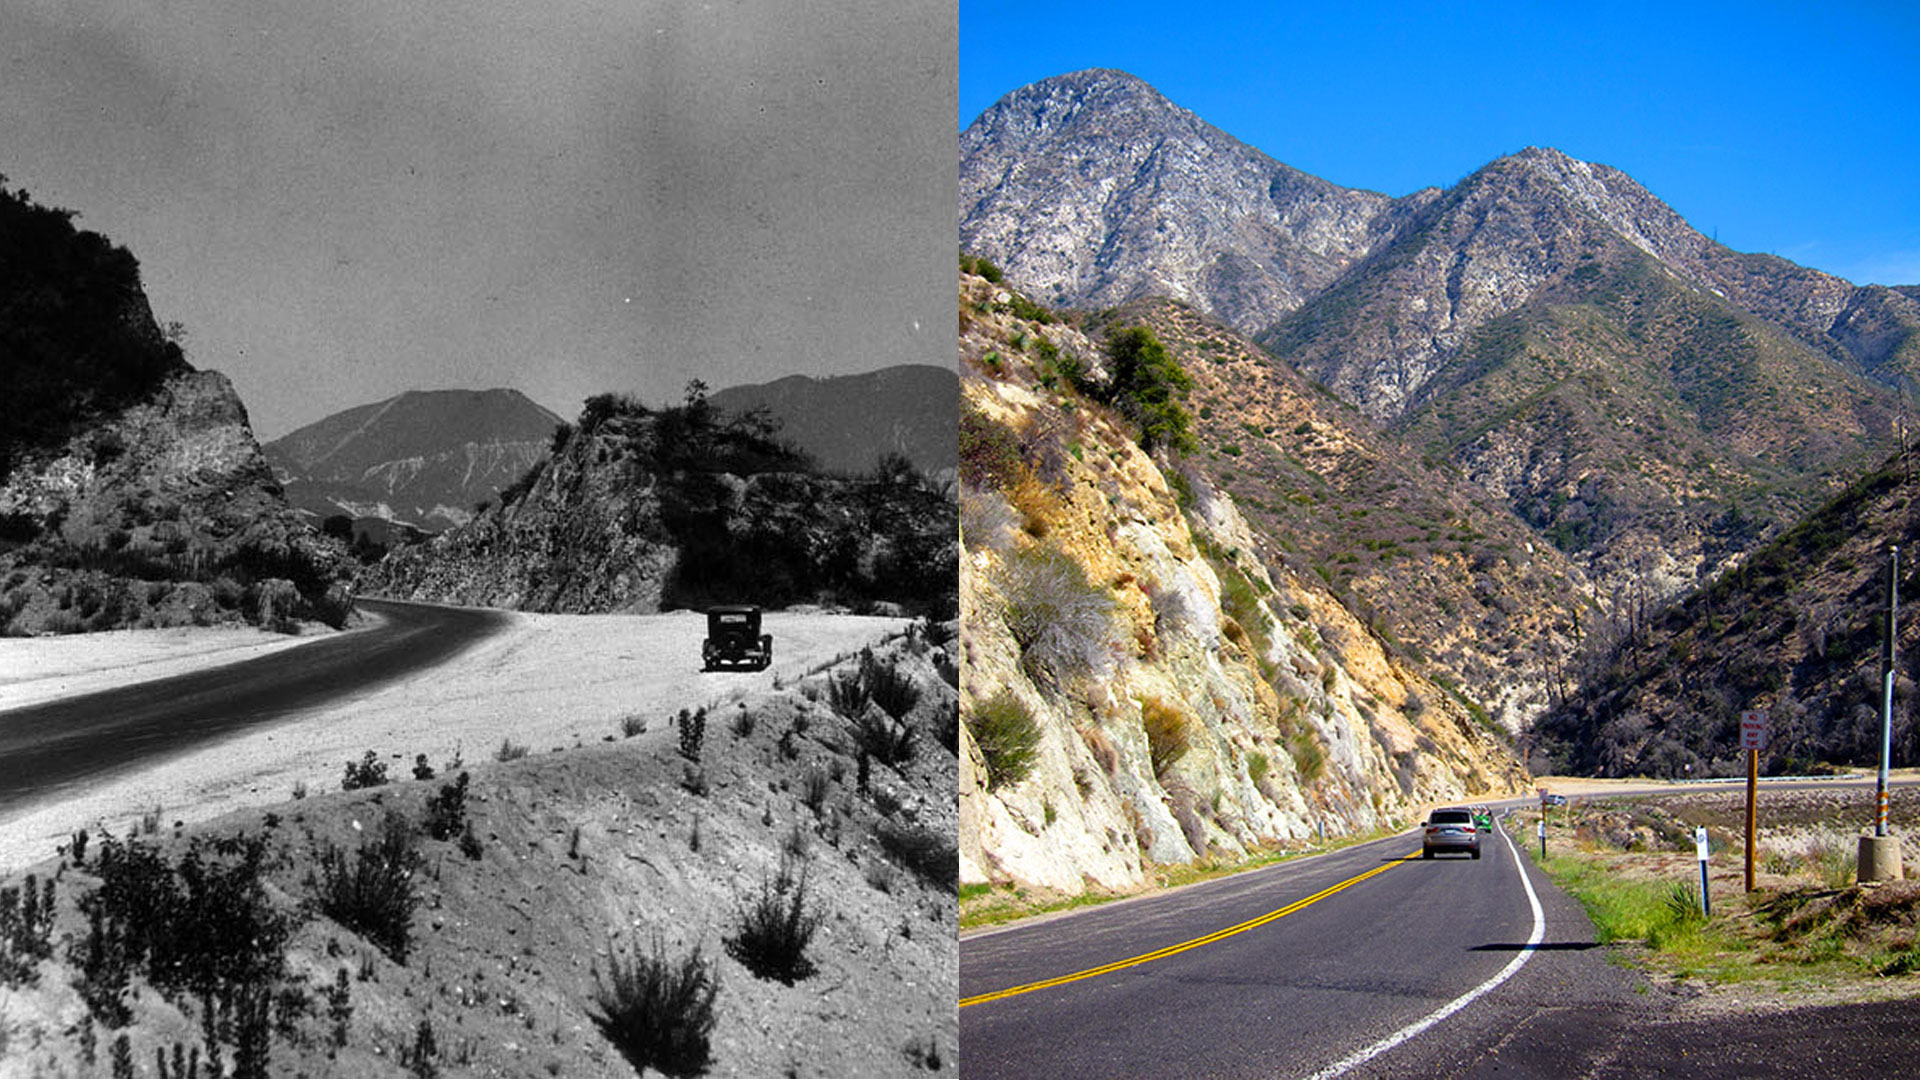 angeles crest highway in comparison